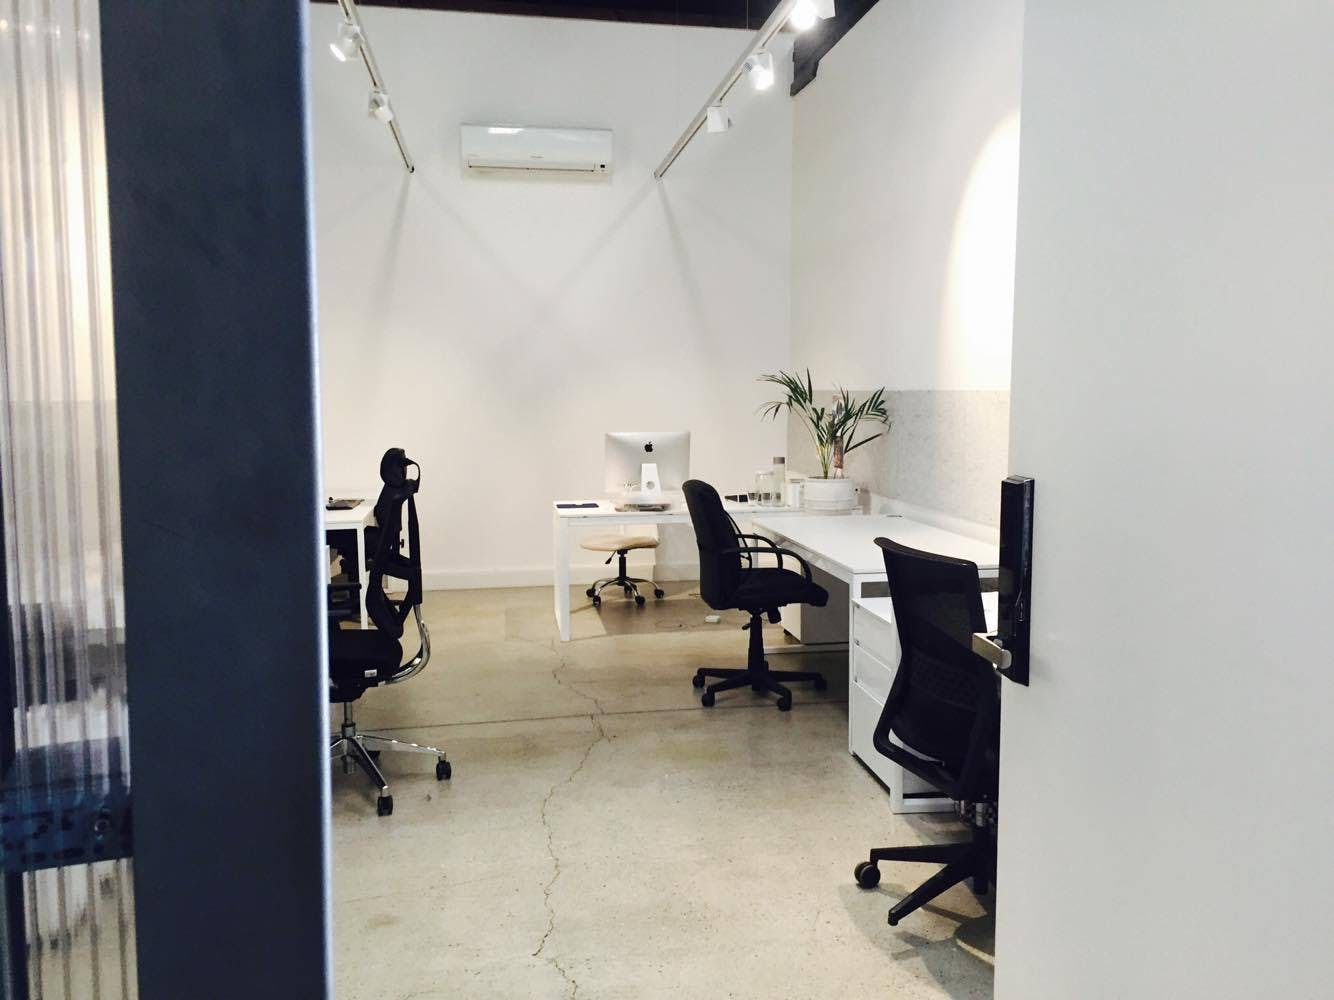 Permanent Desk, coworking at INNX, image 2